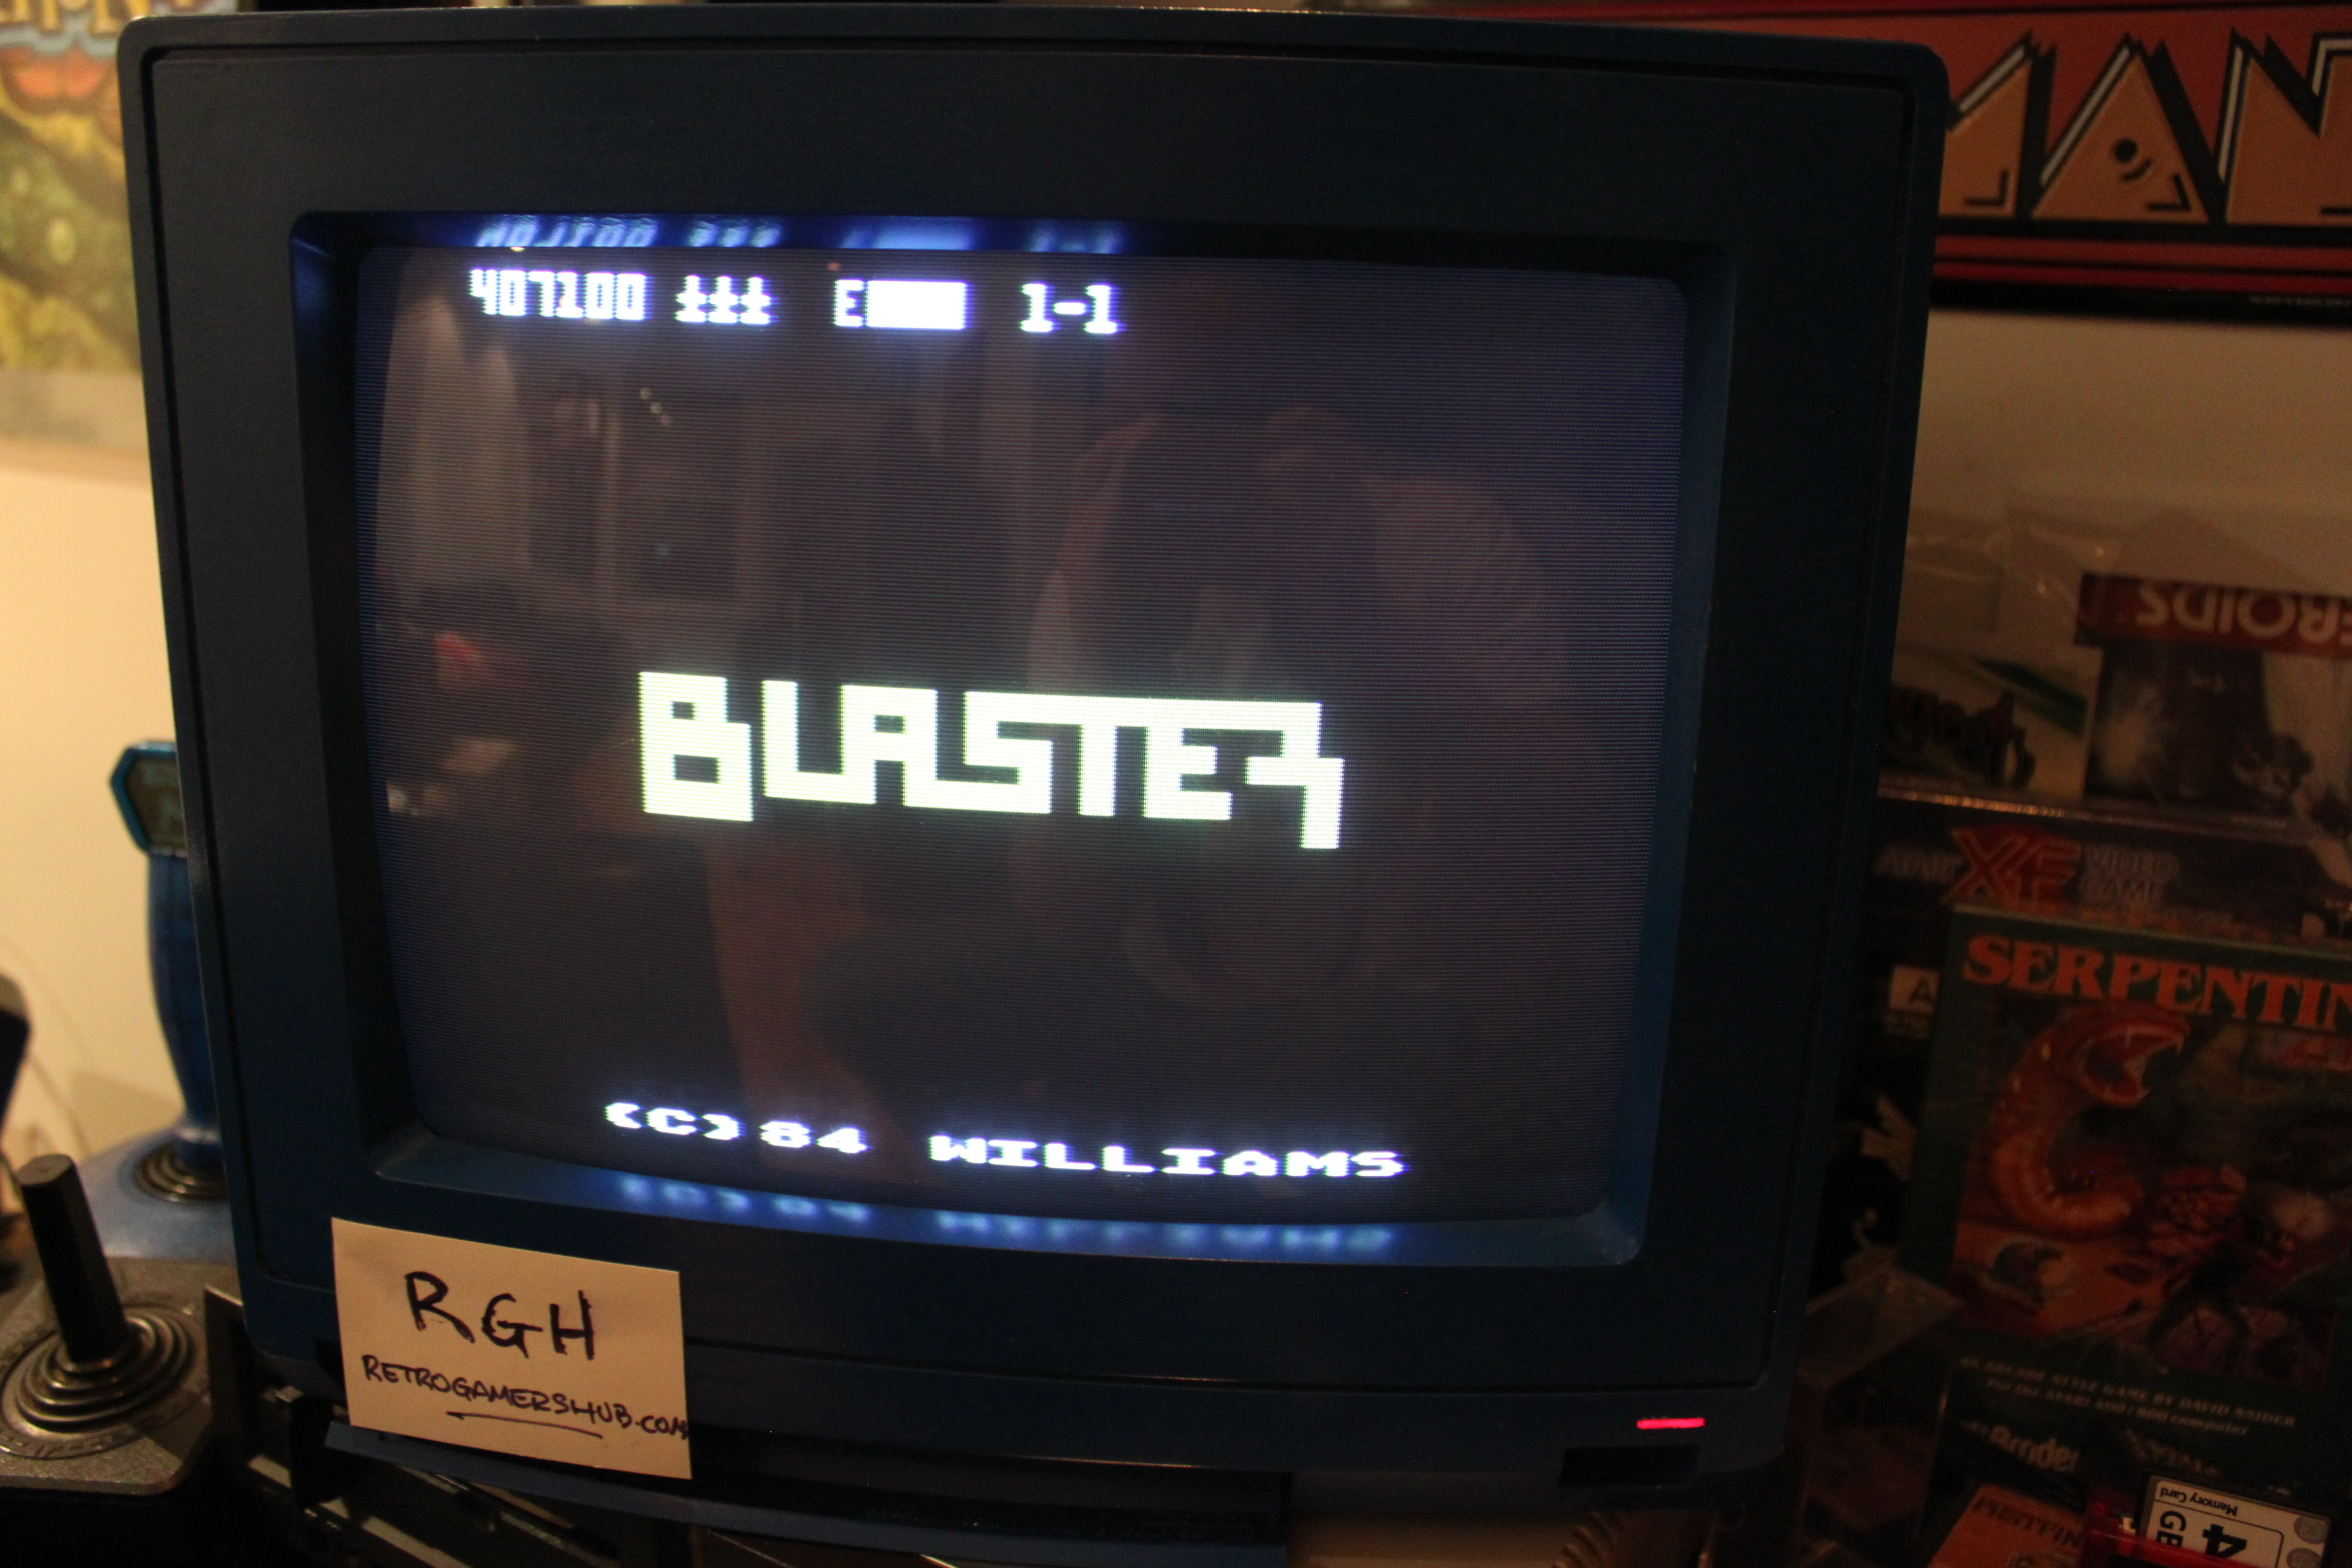 RetroGamersHub: Blaster [Start 1-1] (Atari 400/800/XL/XE) 407,100 points on 2017-07-05 23:43:14